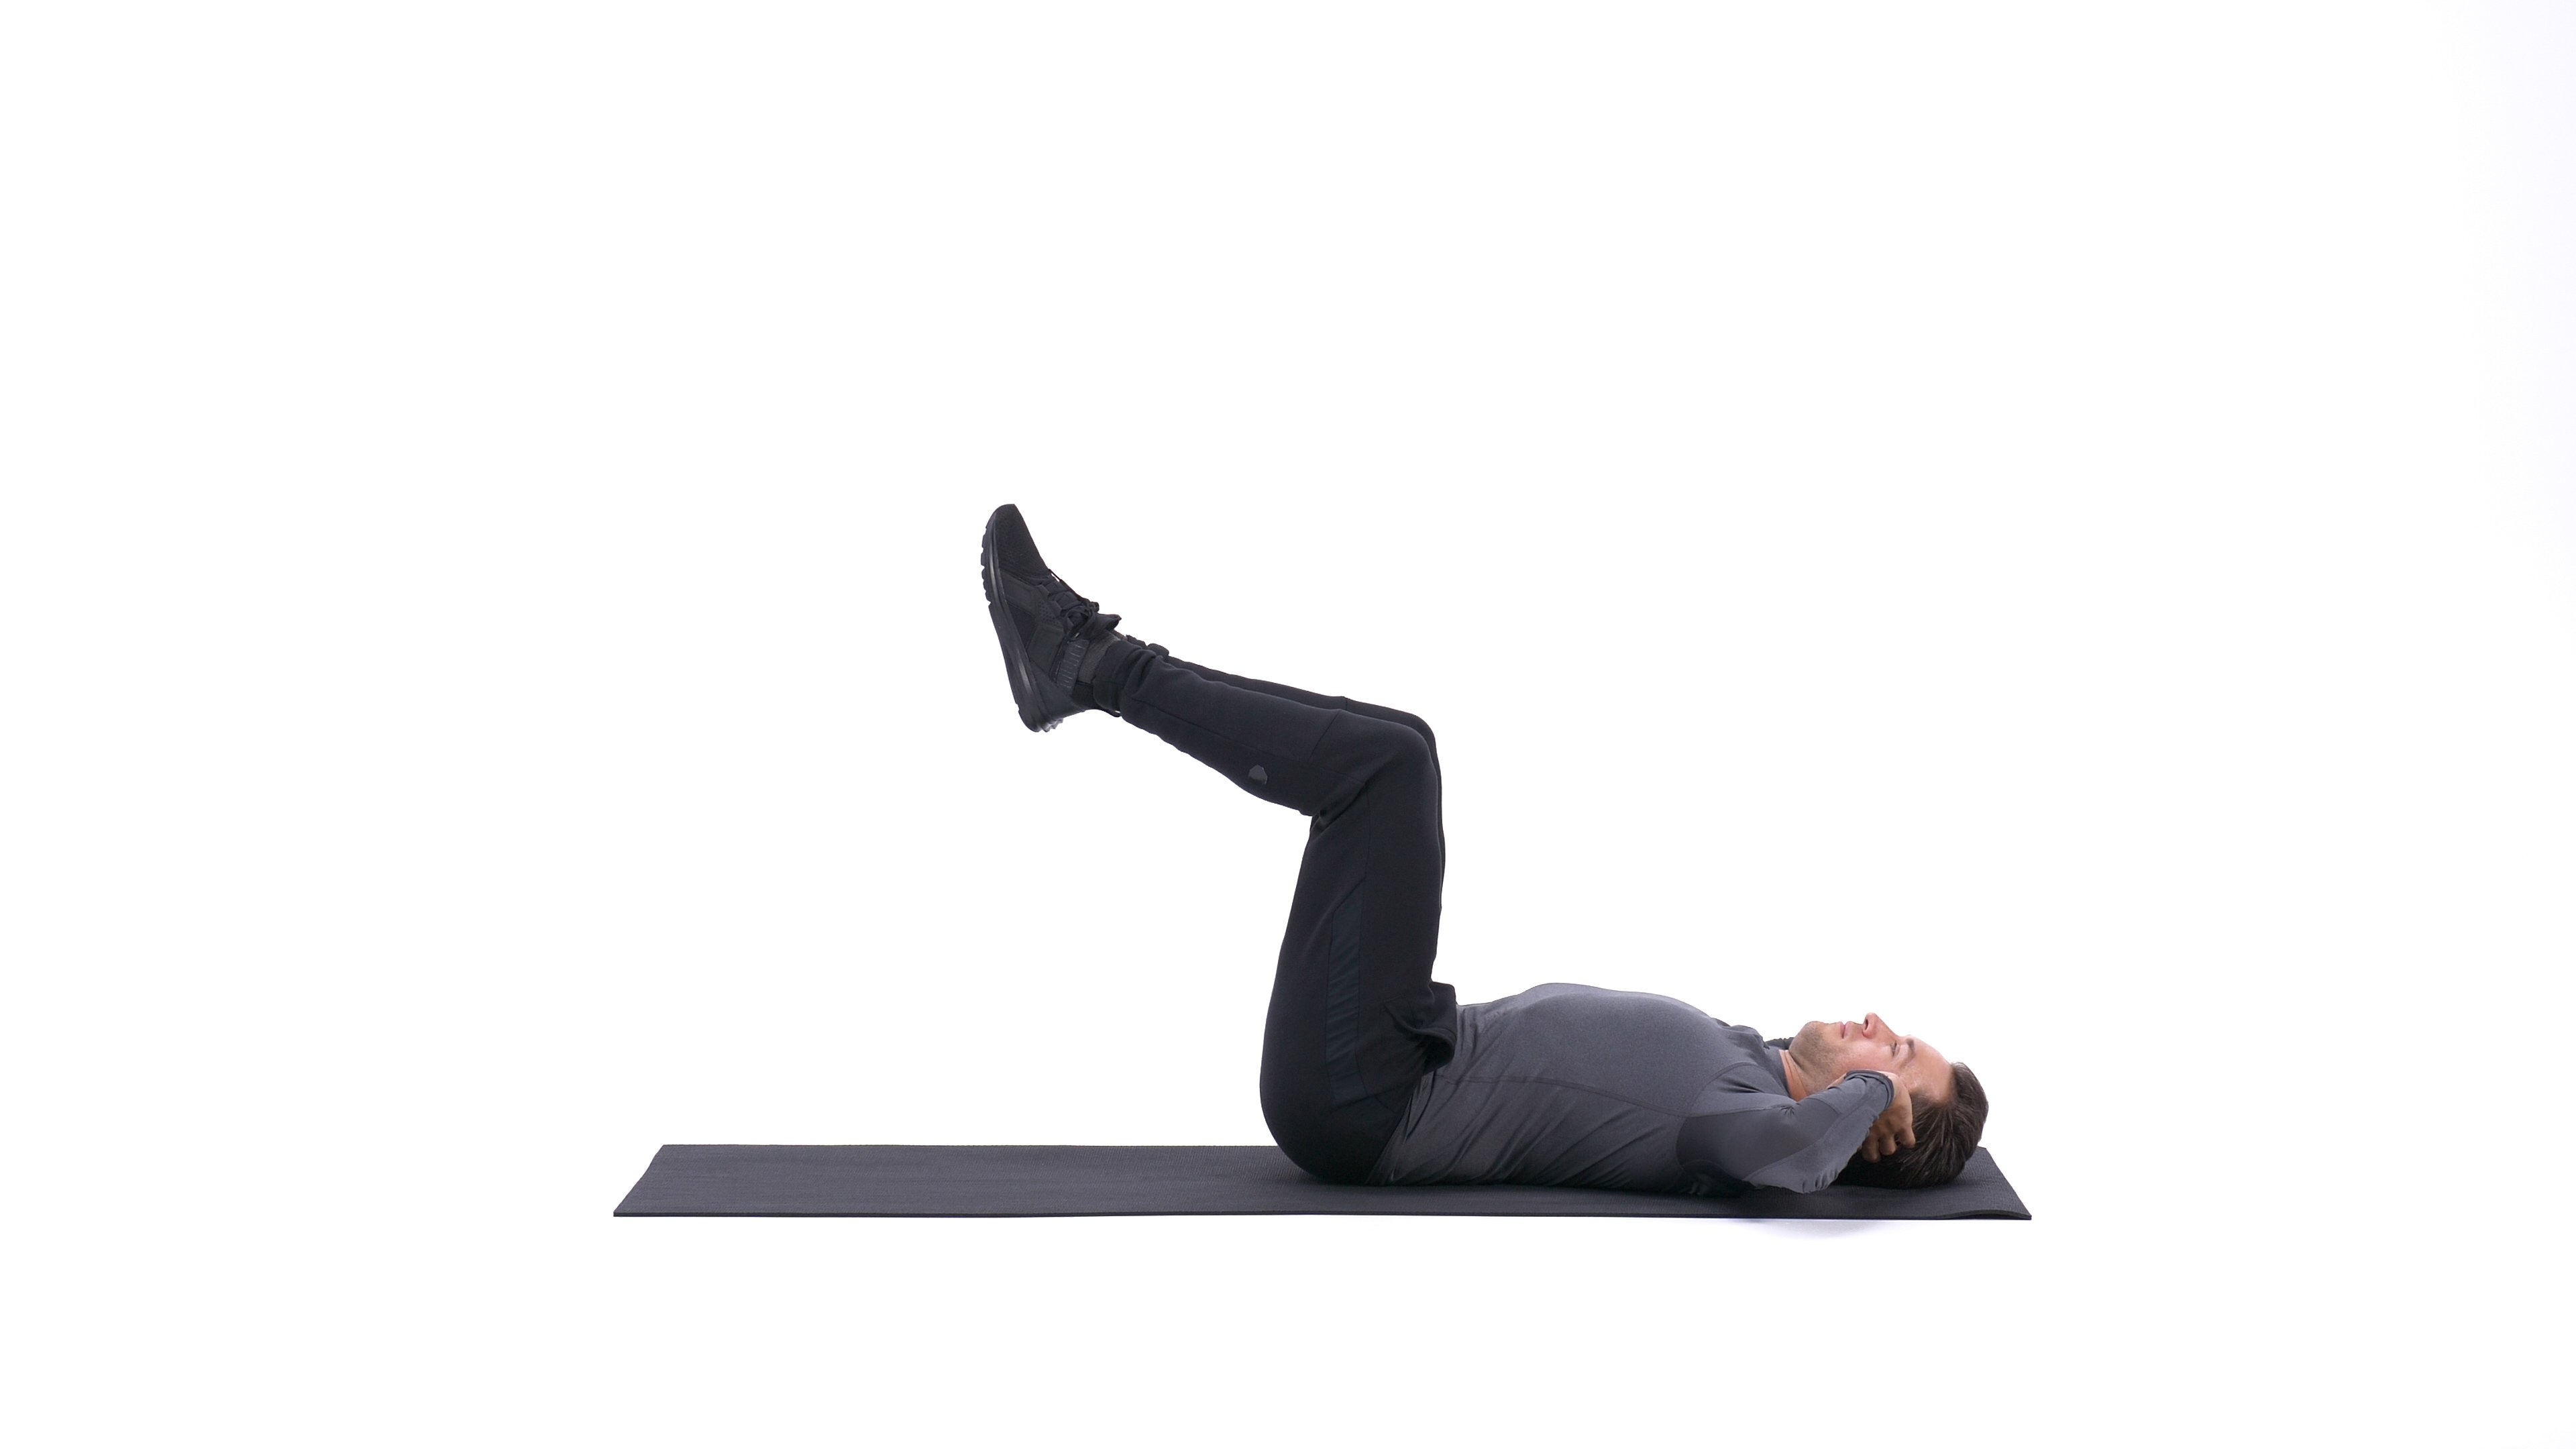 Knees tucked crunch image